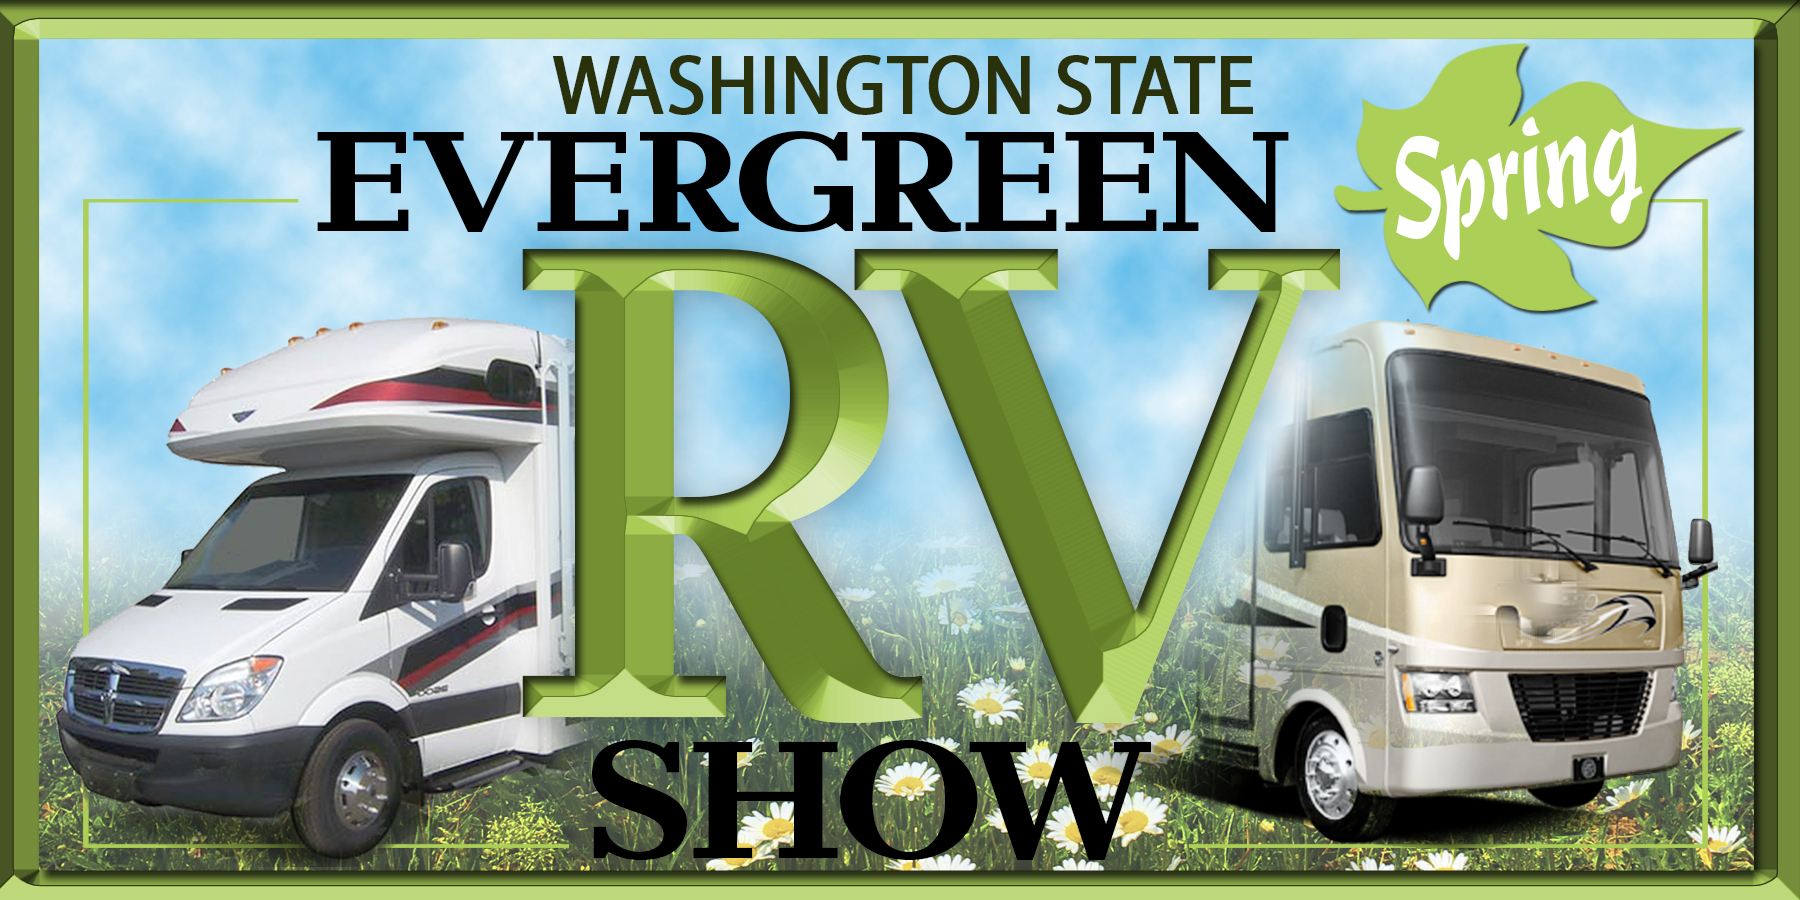 2017 Evergreen Spring RV Show